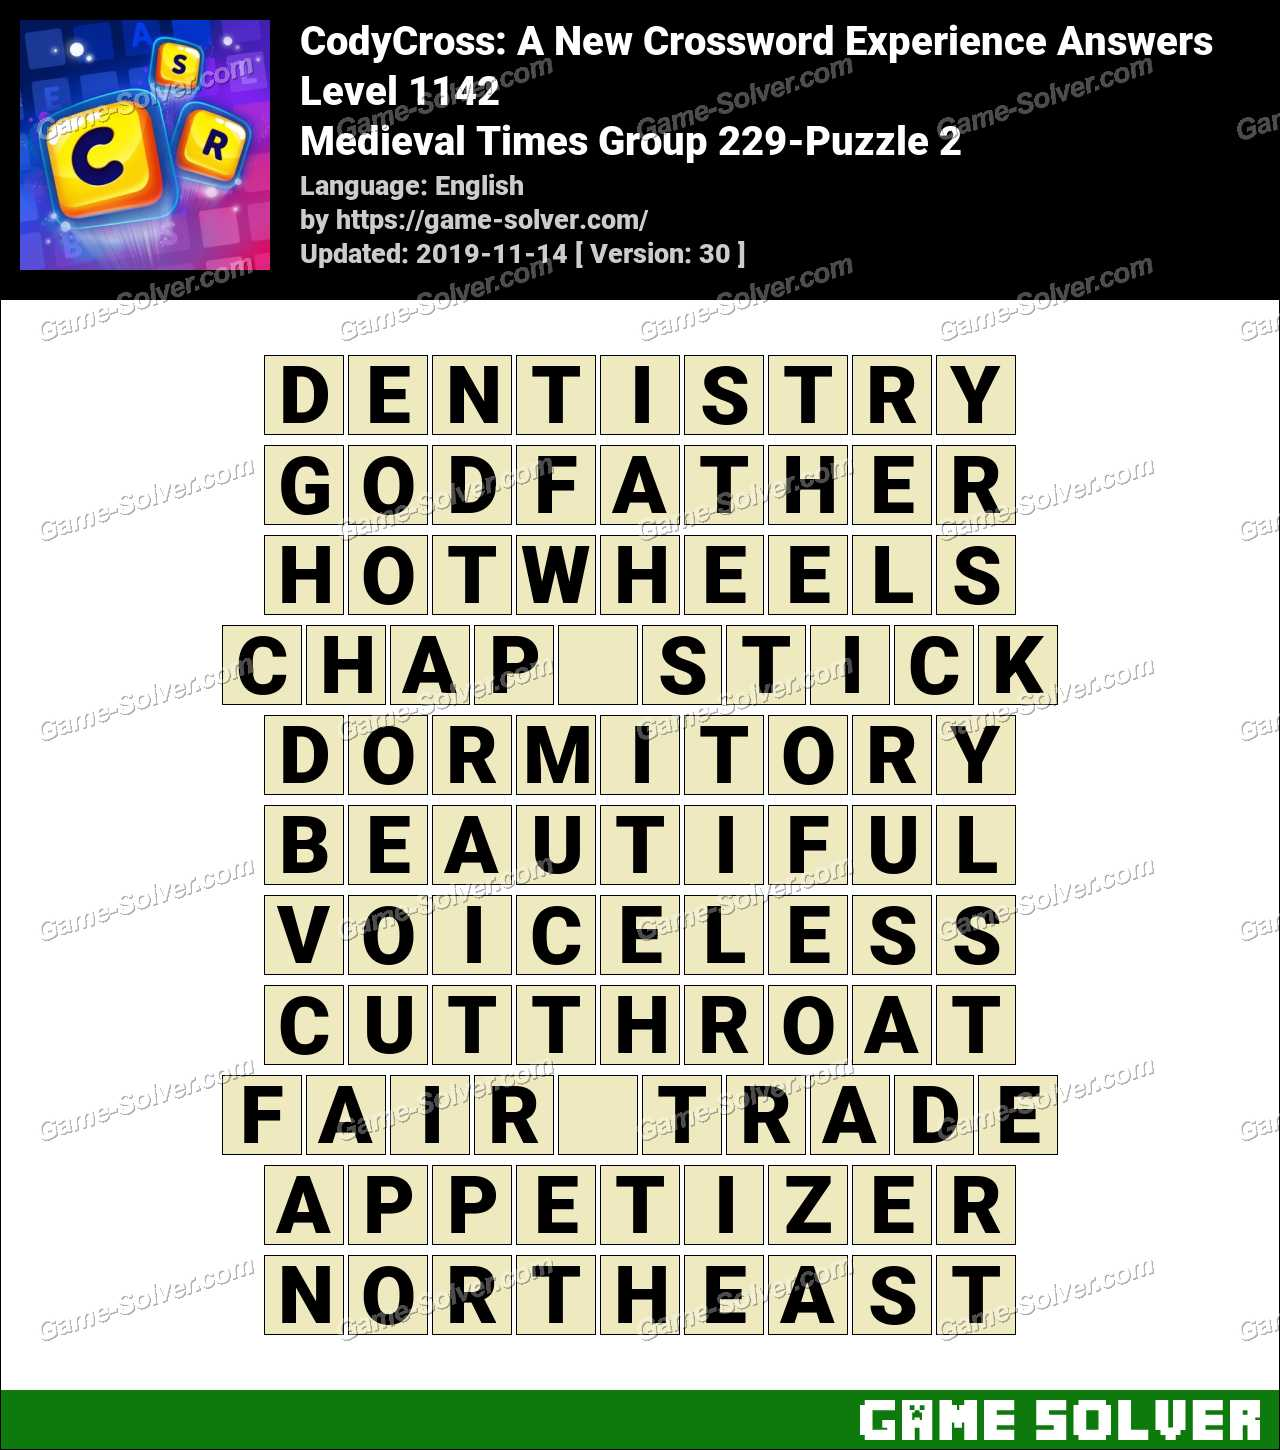 CodyCross Medieval Times Group 229-Puzzle 2 Answers